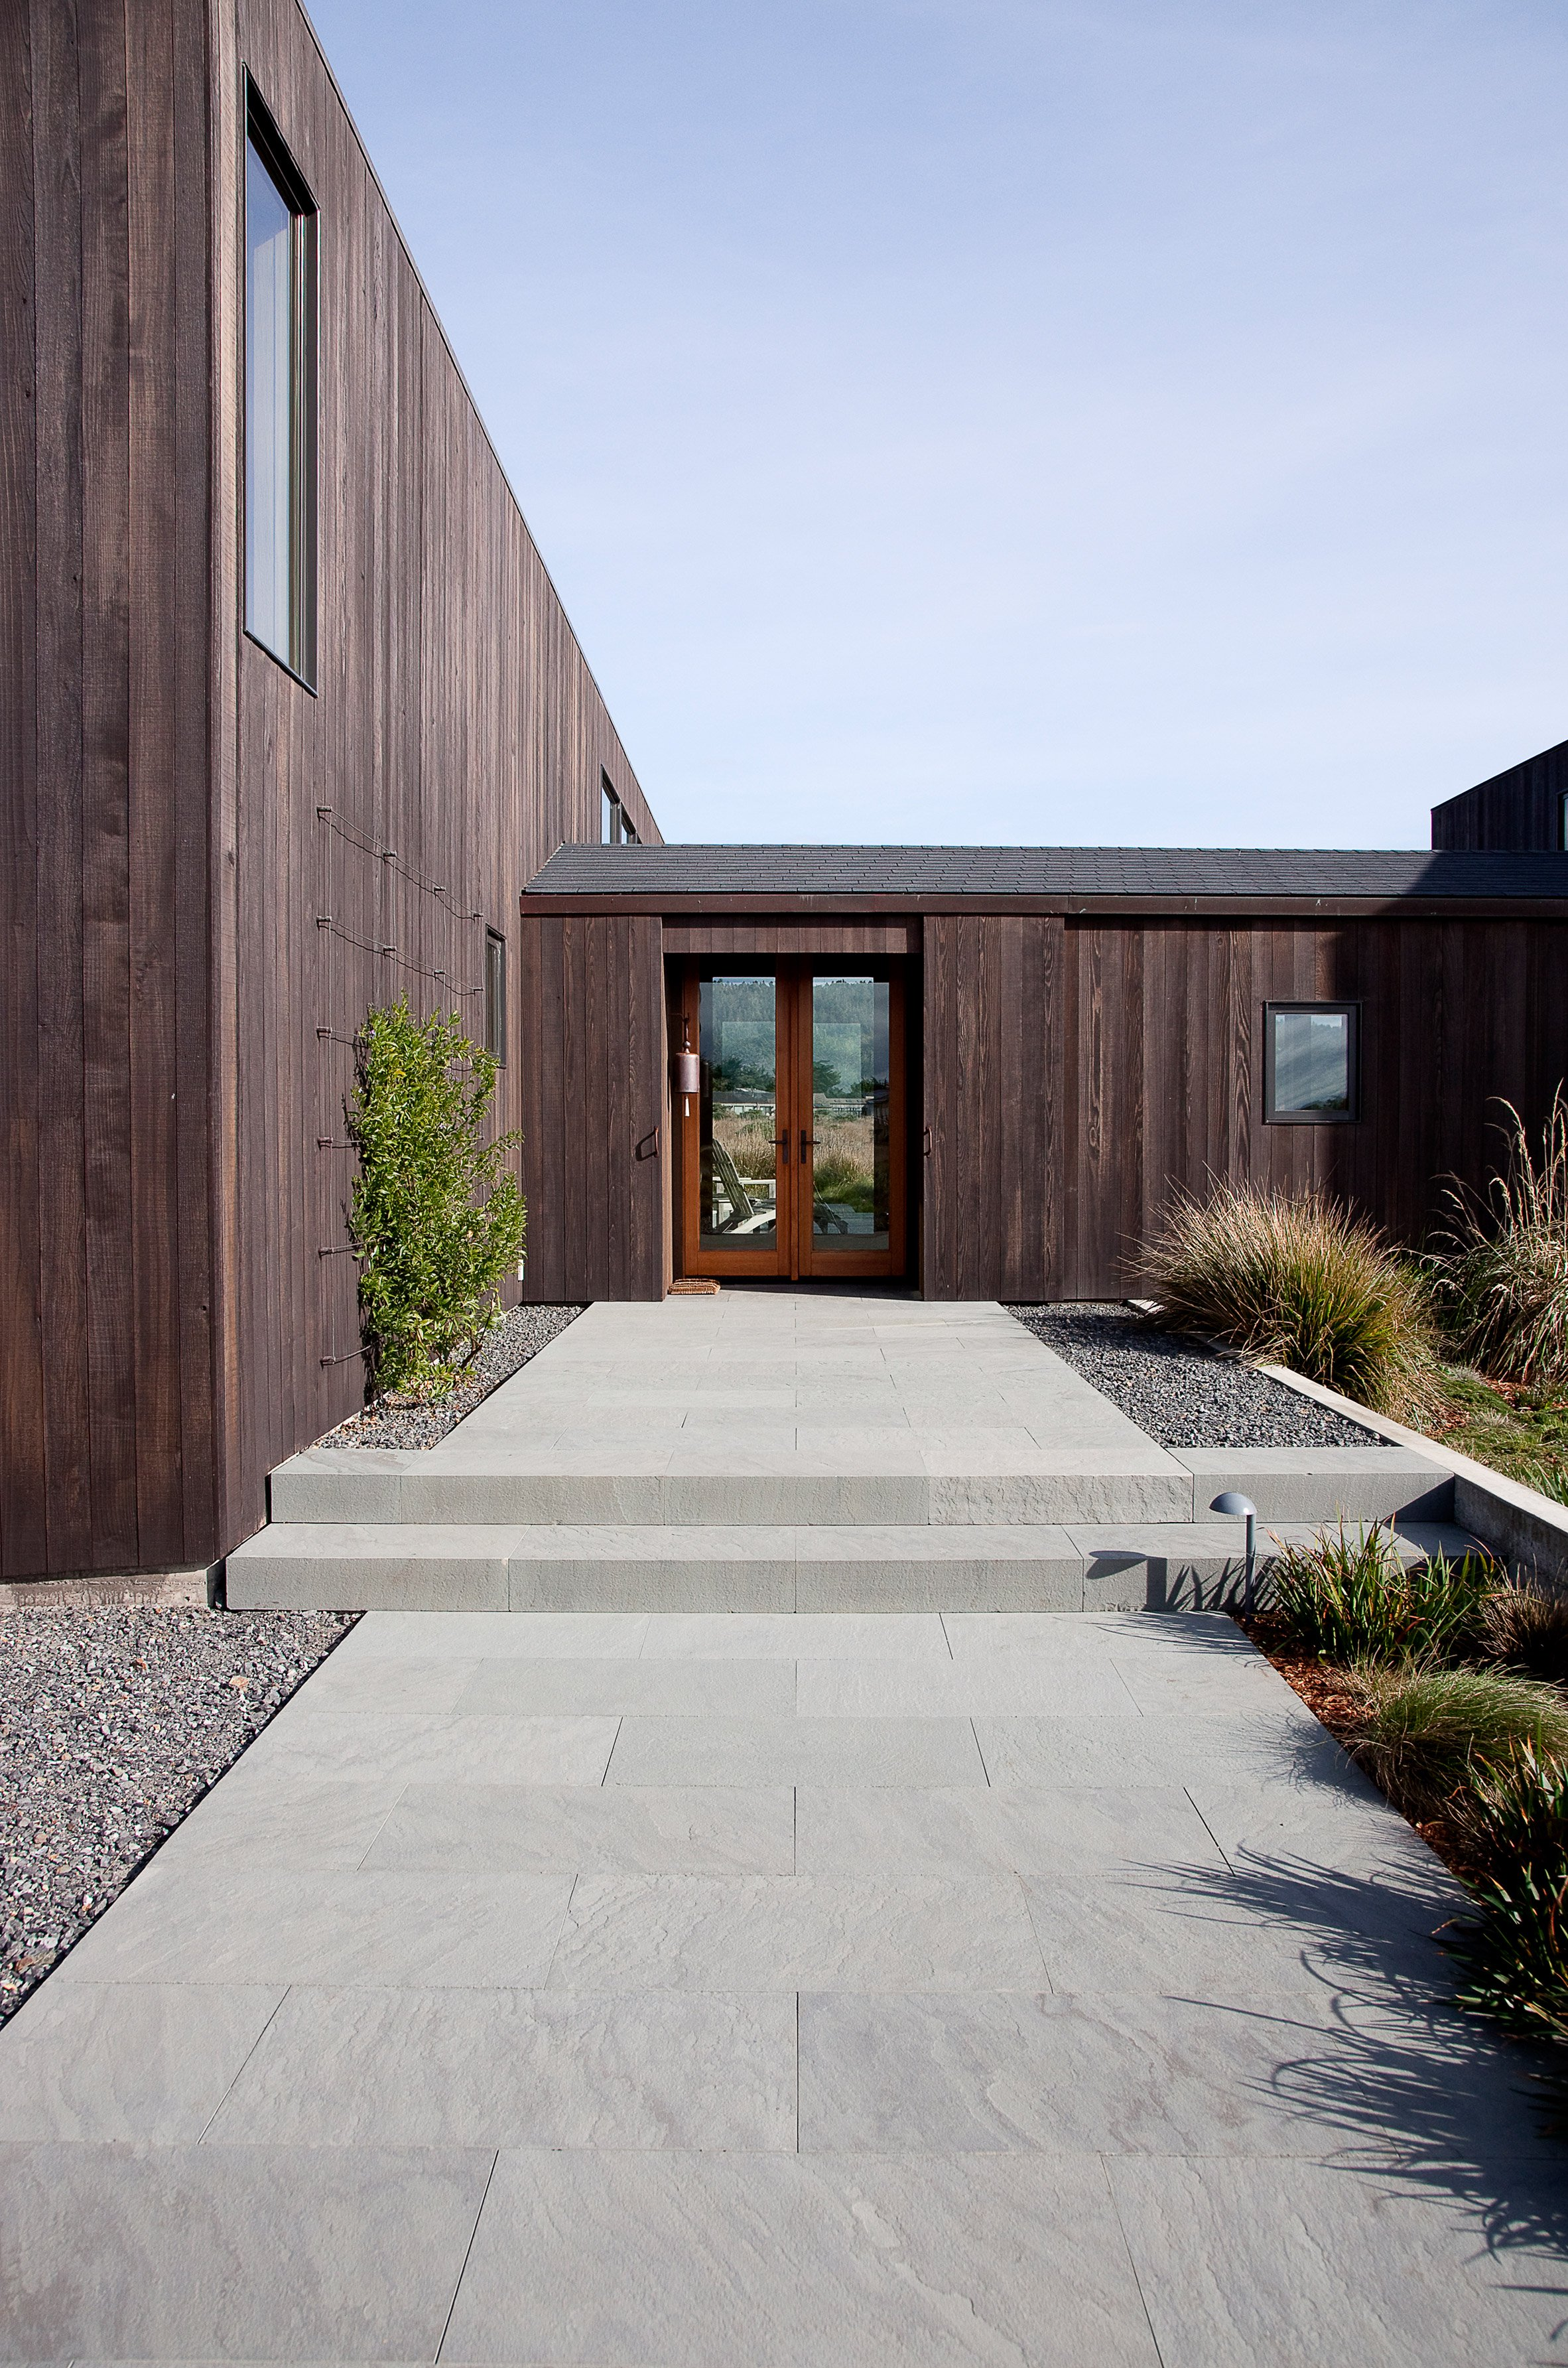 Malcolm Davis creates redwood-clad Meadow House in northern California